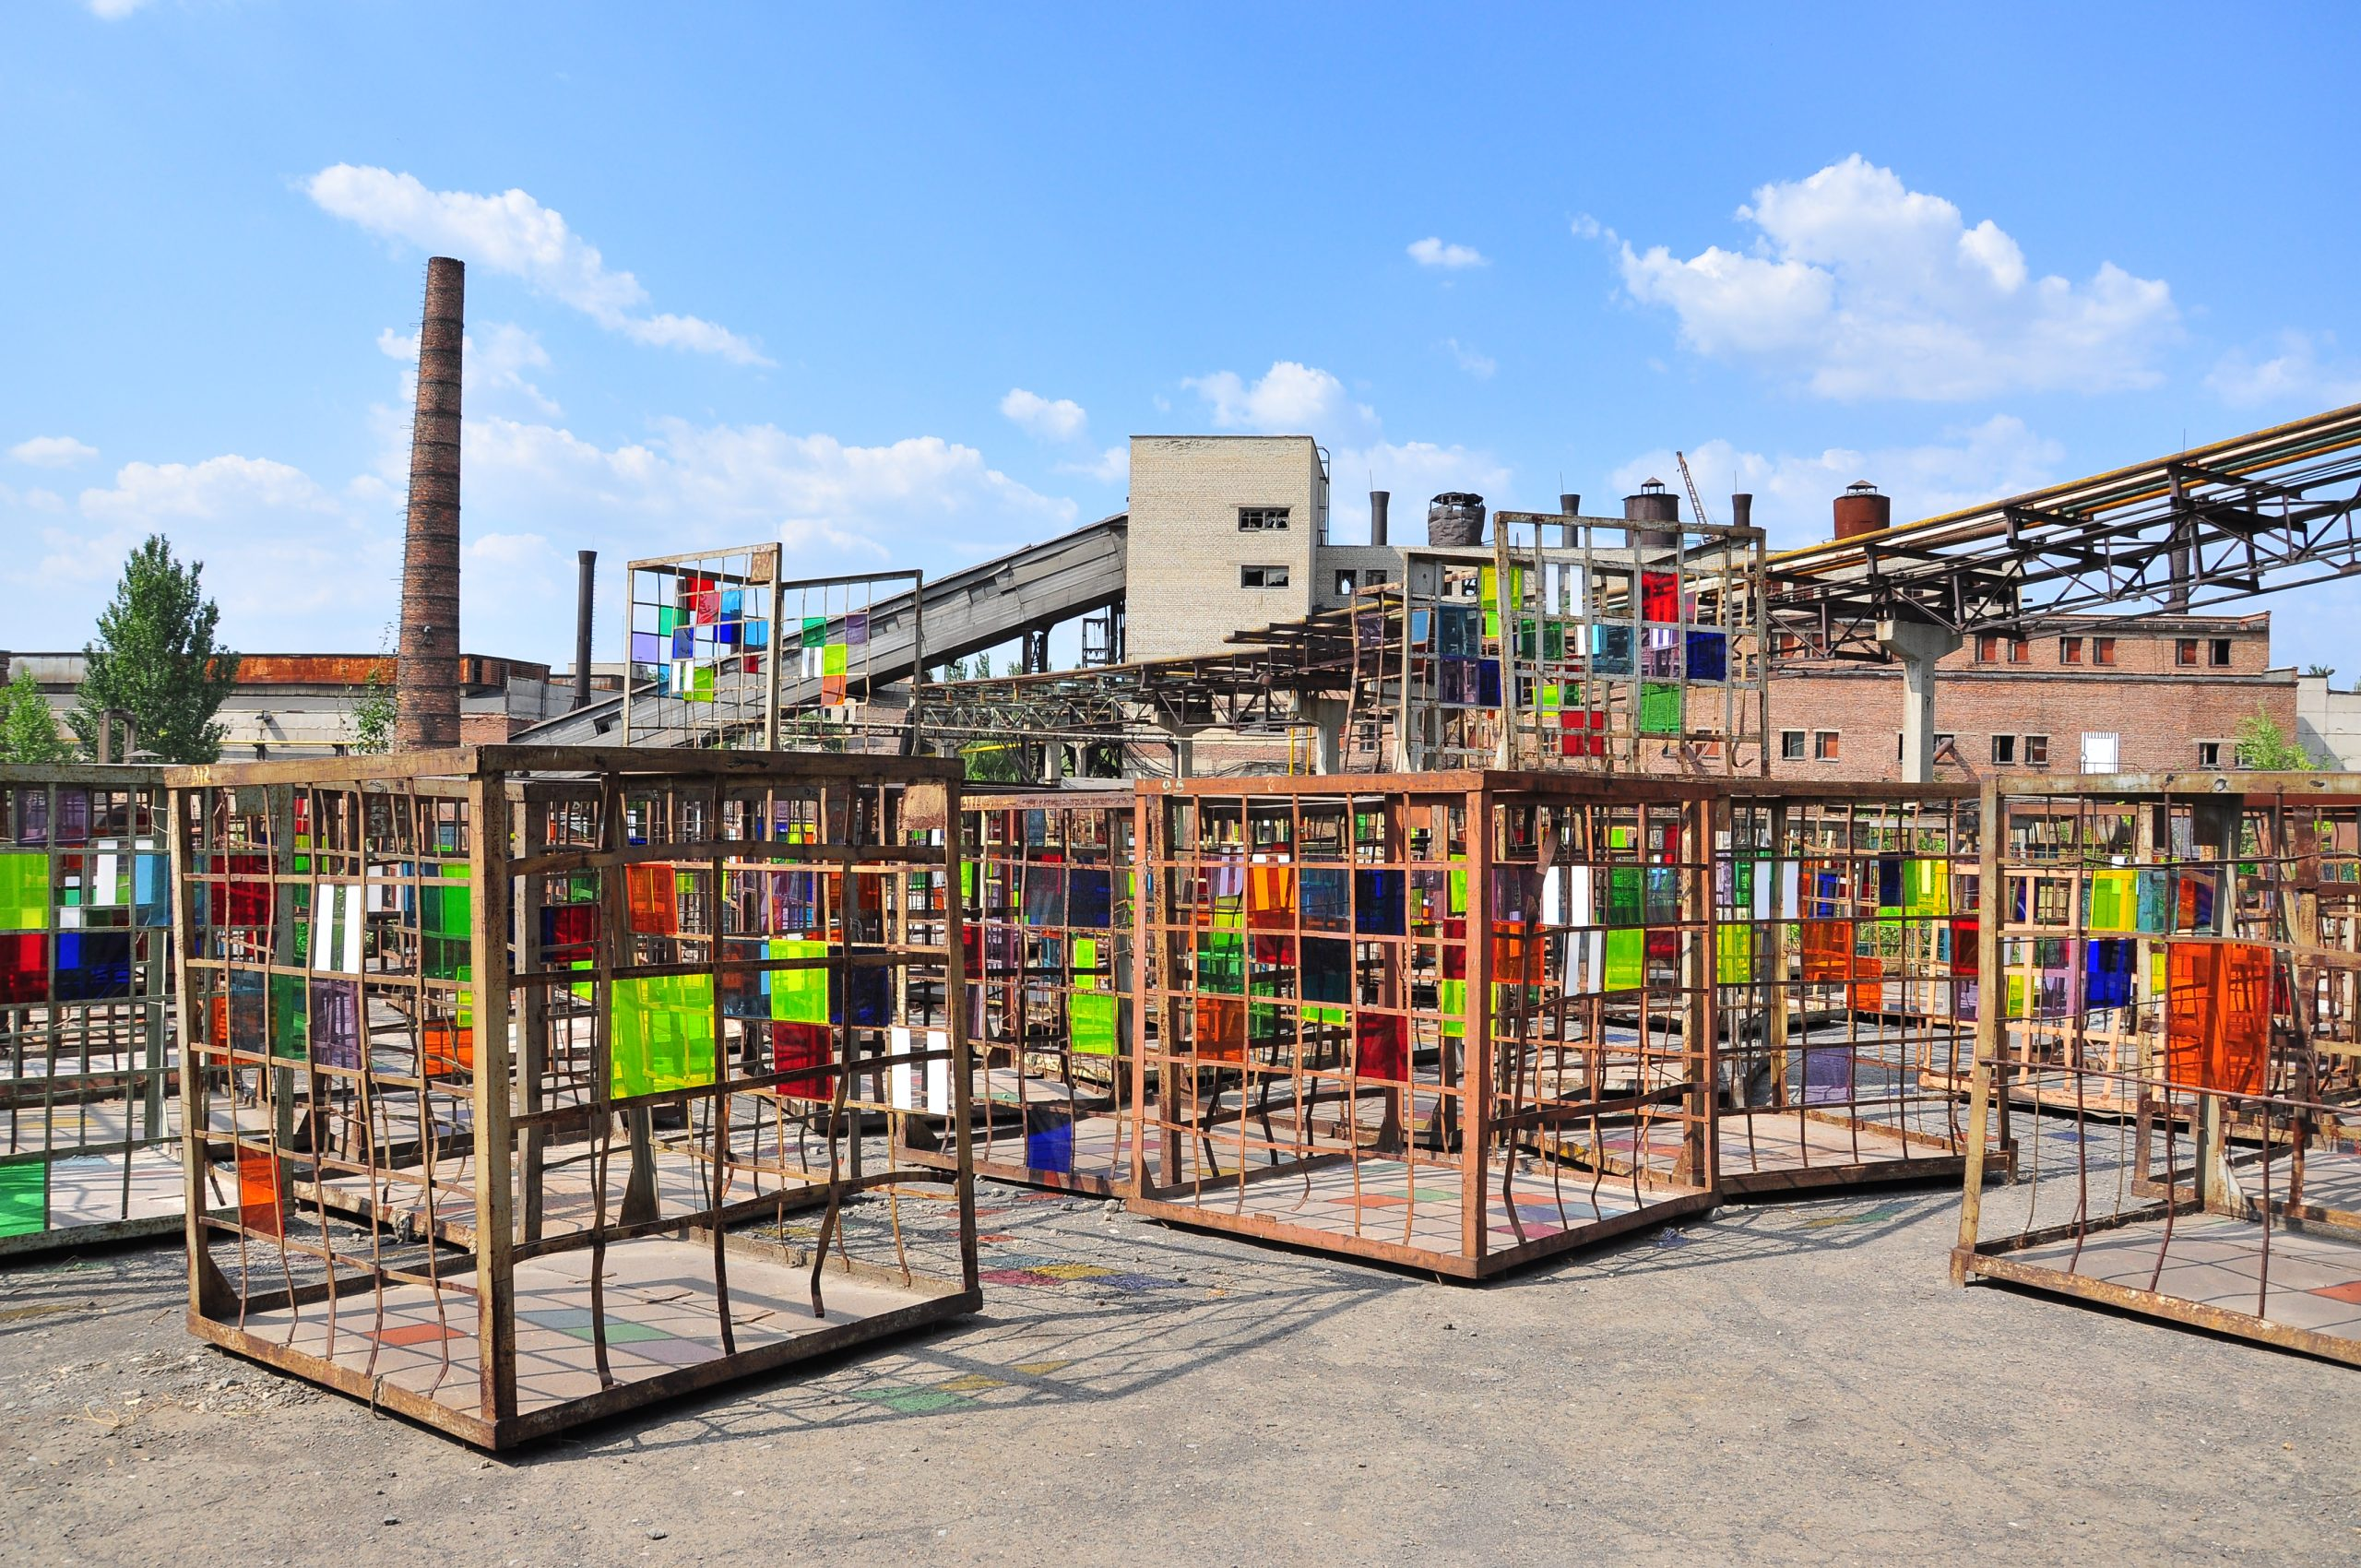 art installation of metal cubes with colored glass plates in the courtyard of a defunct factory